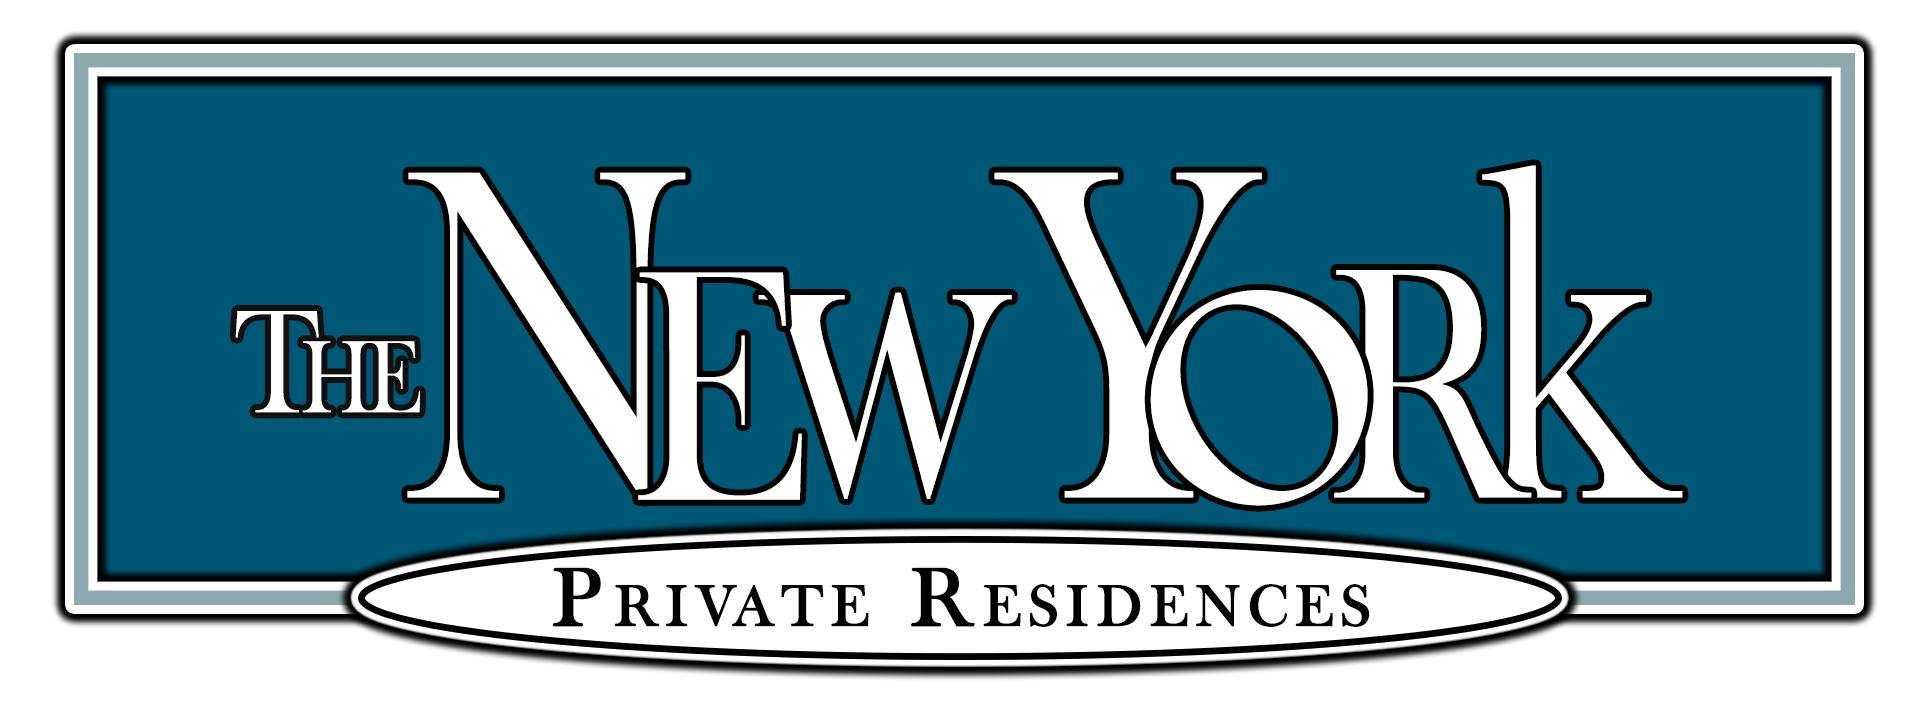 The New York Private Residences